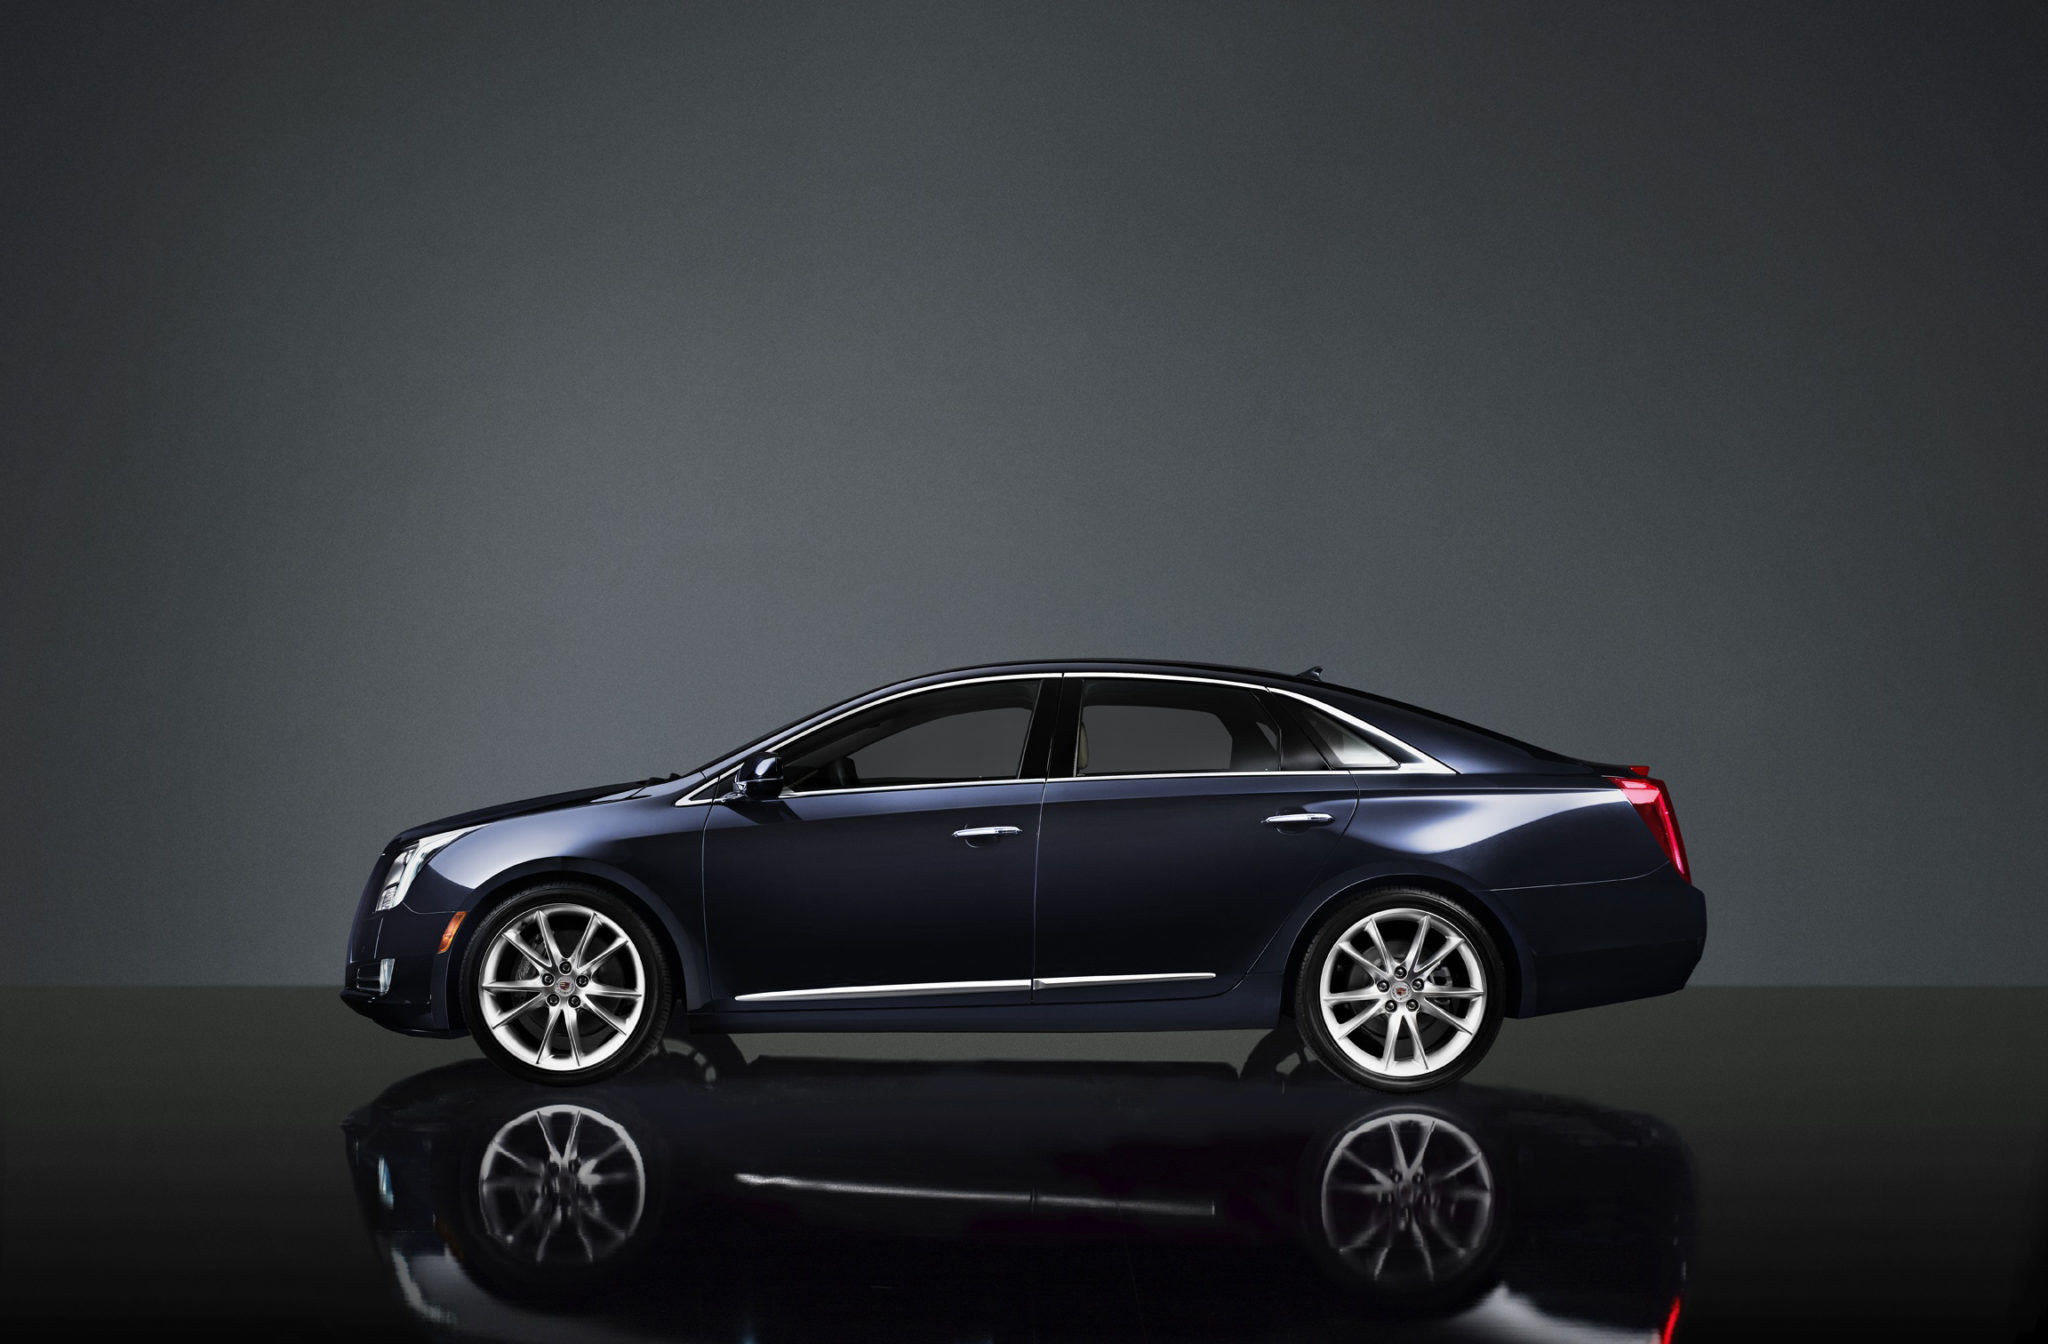 2013 cadillac xts sexy sedan creates ambiance gaywheels. Black Bedroom Furniture Sets. Home Design Ideas